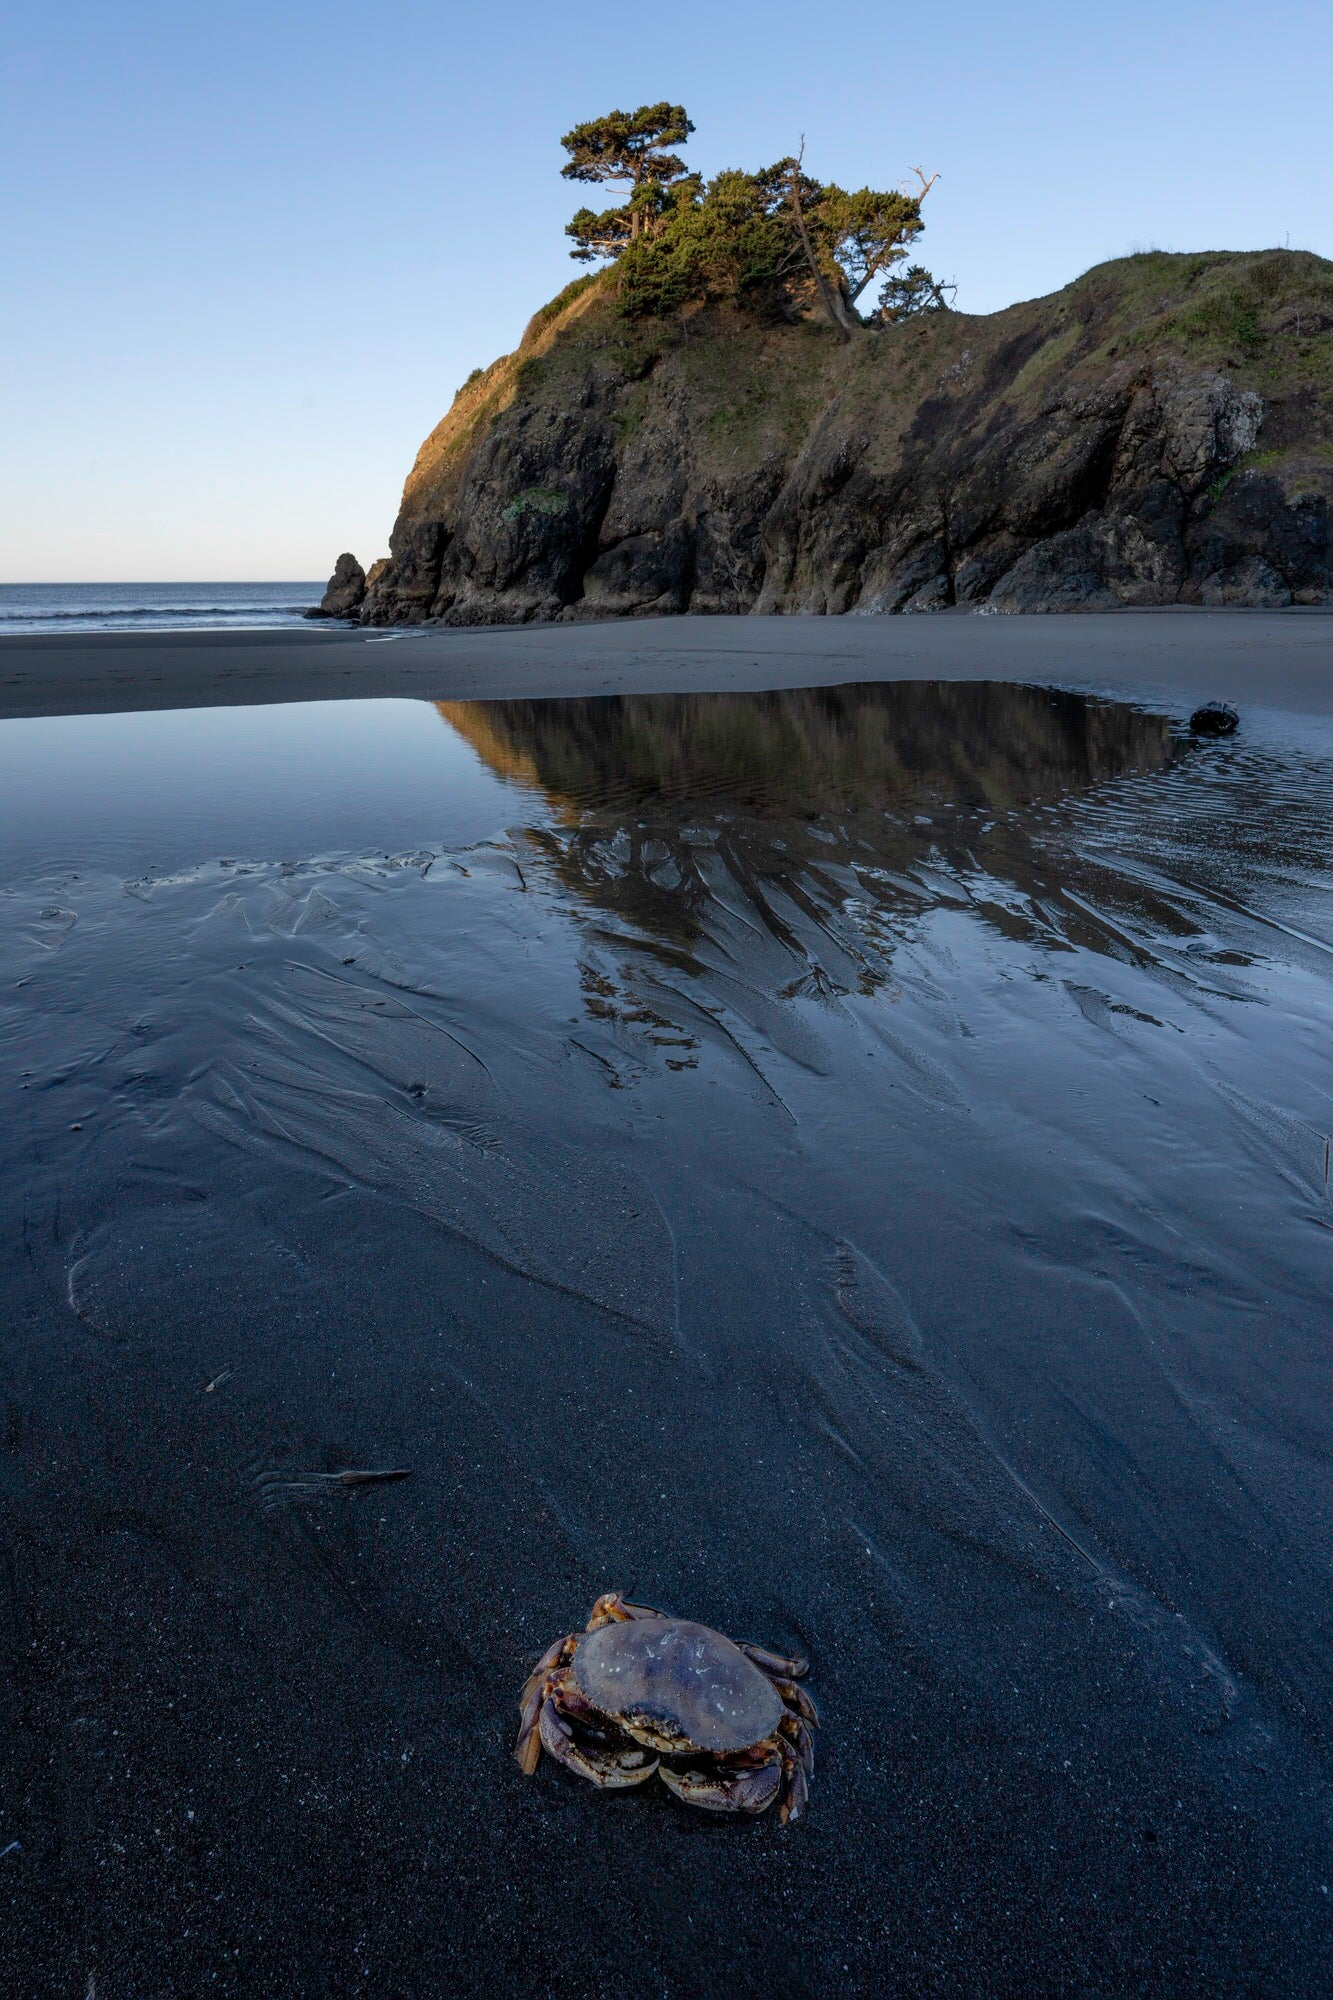 Sony-Alpha-Universe-Photo-by-Don-Smith-14mm-GM-Crab-on-Beach-at-Low-Tide-2.jpeg